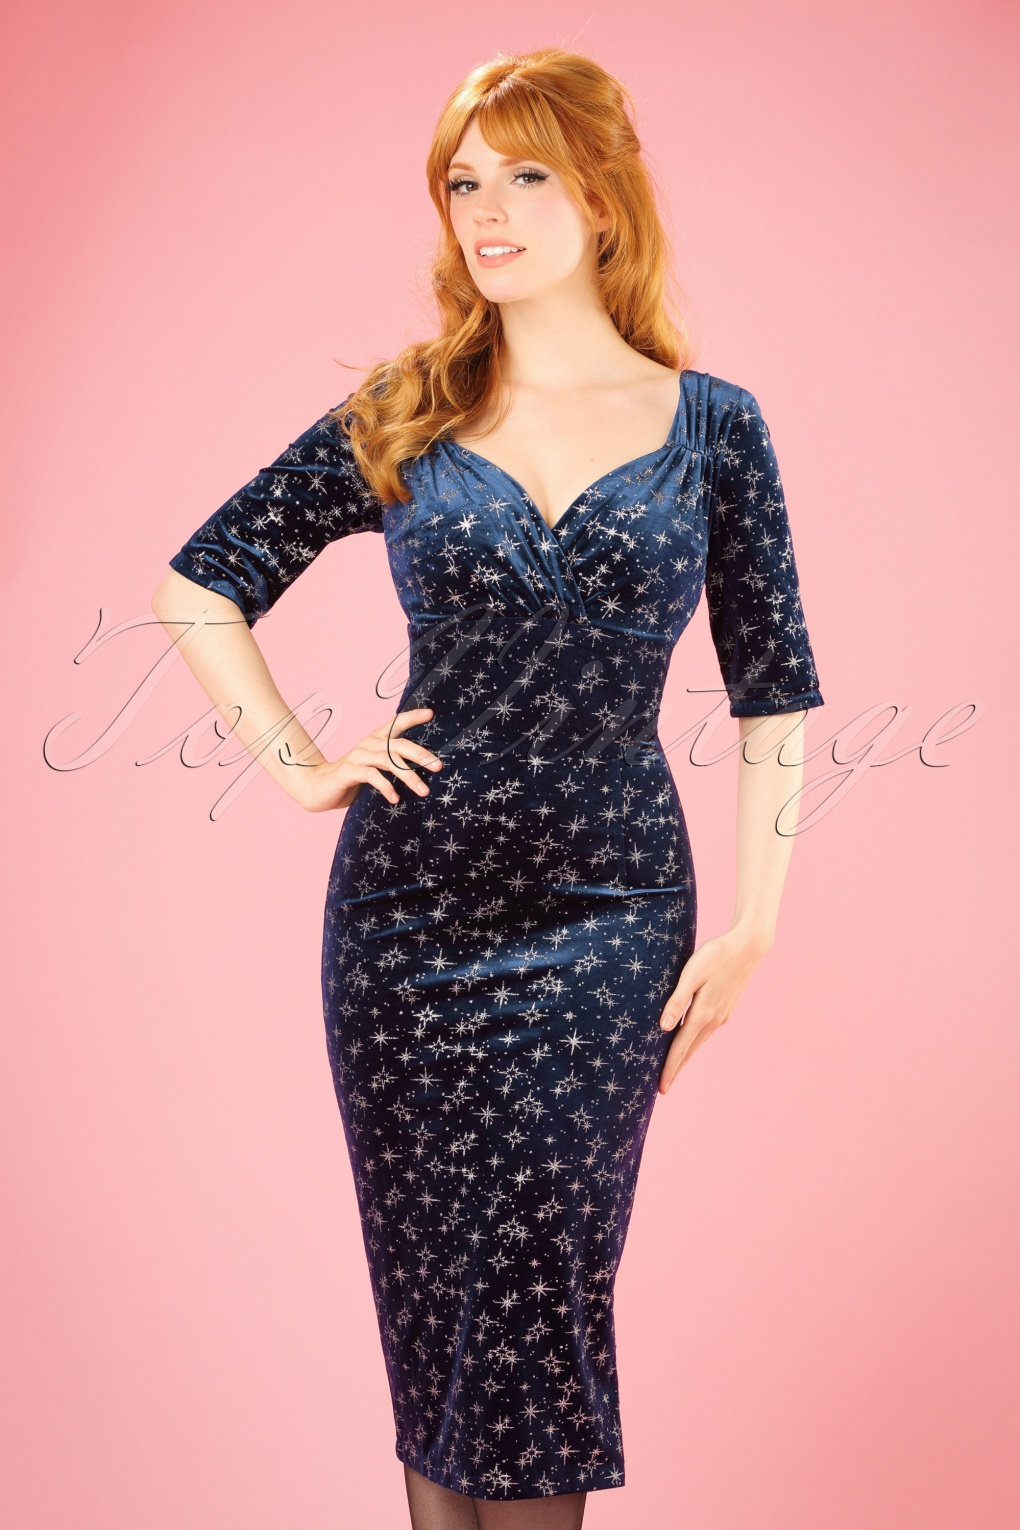 1950s Dresses, 50s Dresses | 1950s Style Dresses 50s Trixie Velvet Sparkle Pencil Dress in Navy £49.53 AT vintagedancer.com